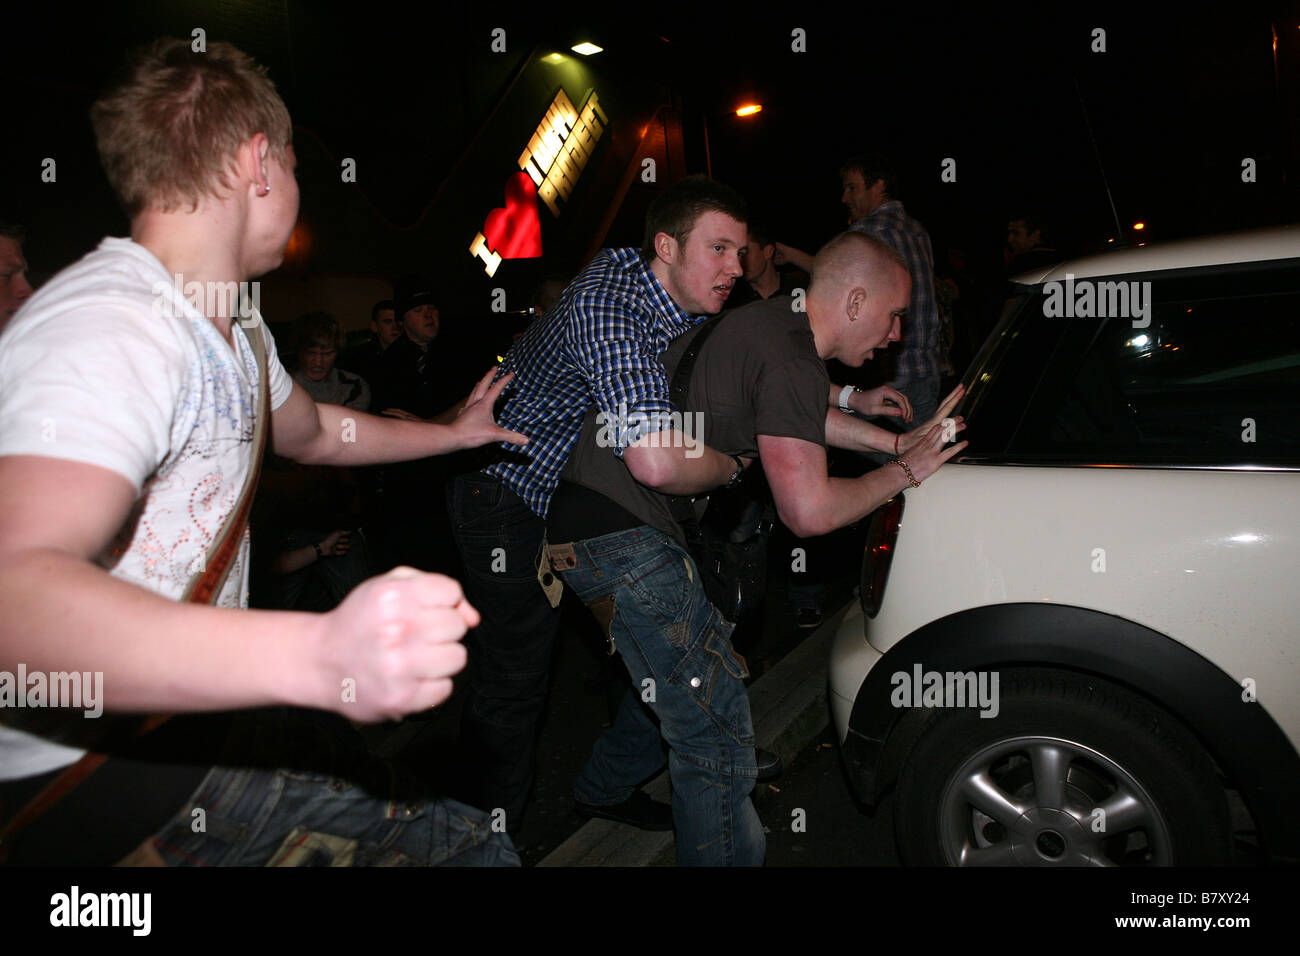 violence outside a nightclub in Oldham , UK - Stock Image